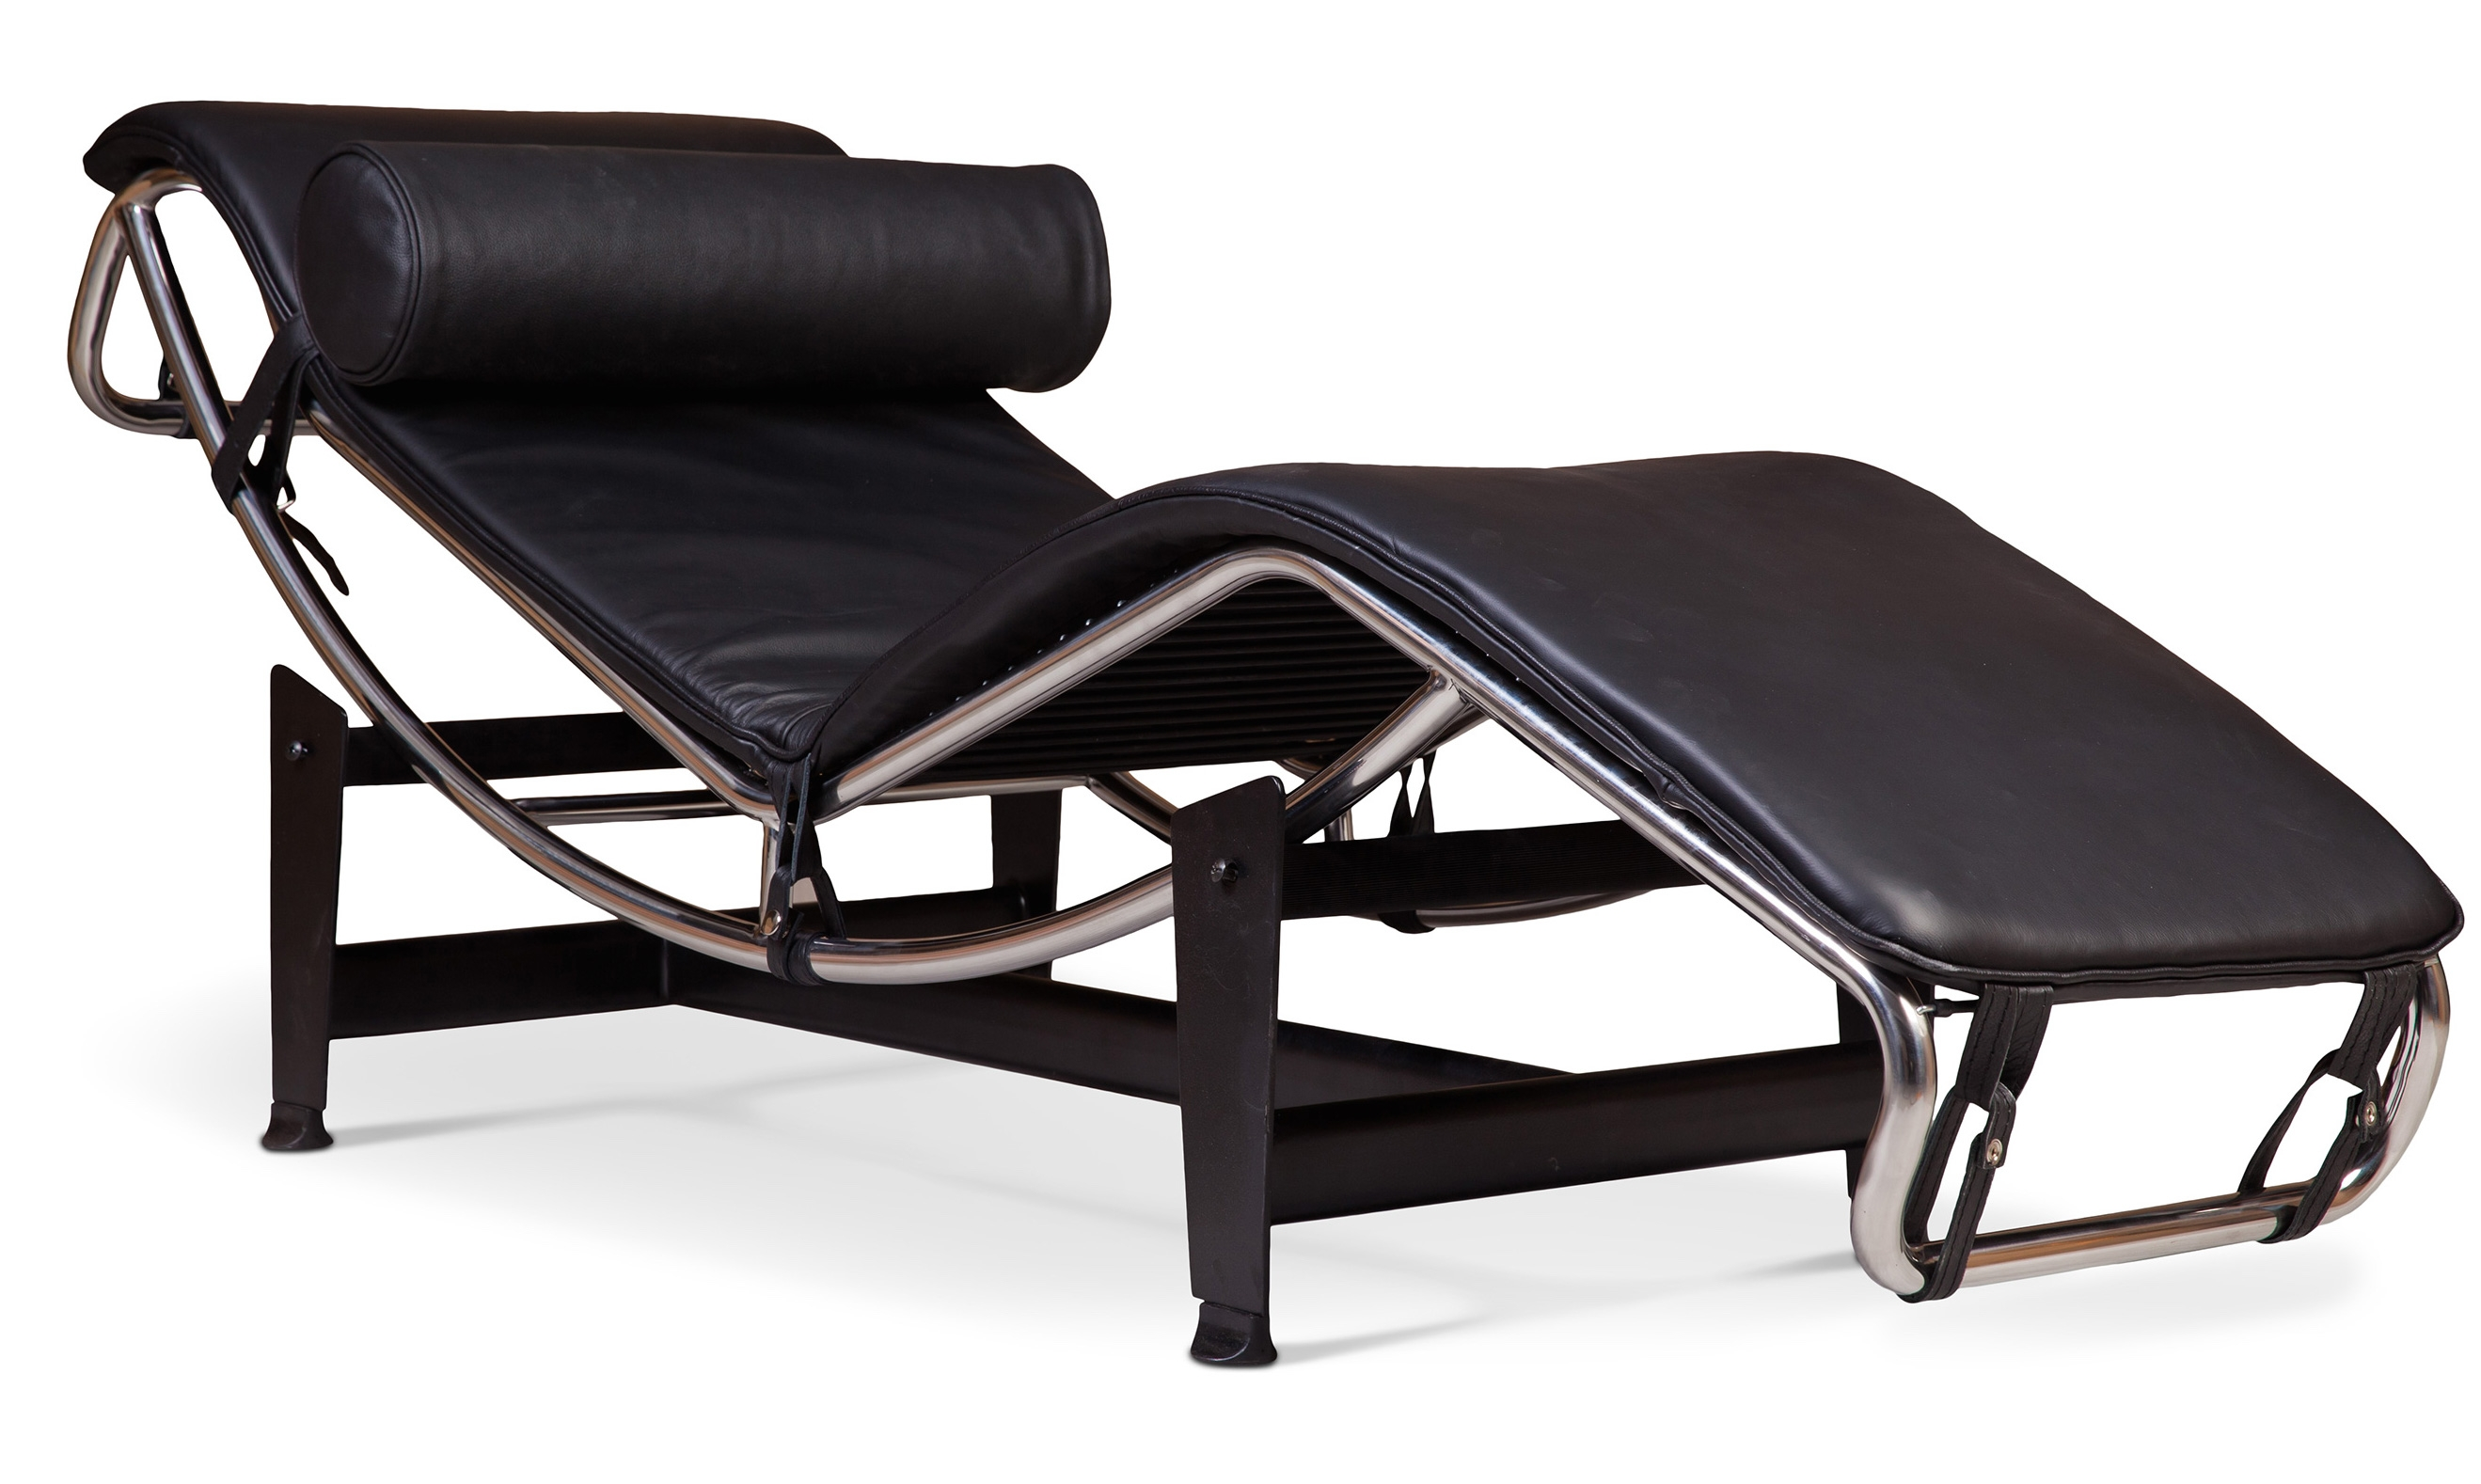 chaise longue simili noir inspir lc4 de le corbusier. Black Bedroom Furniture Sets. Home Design Ideas